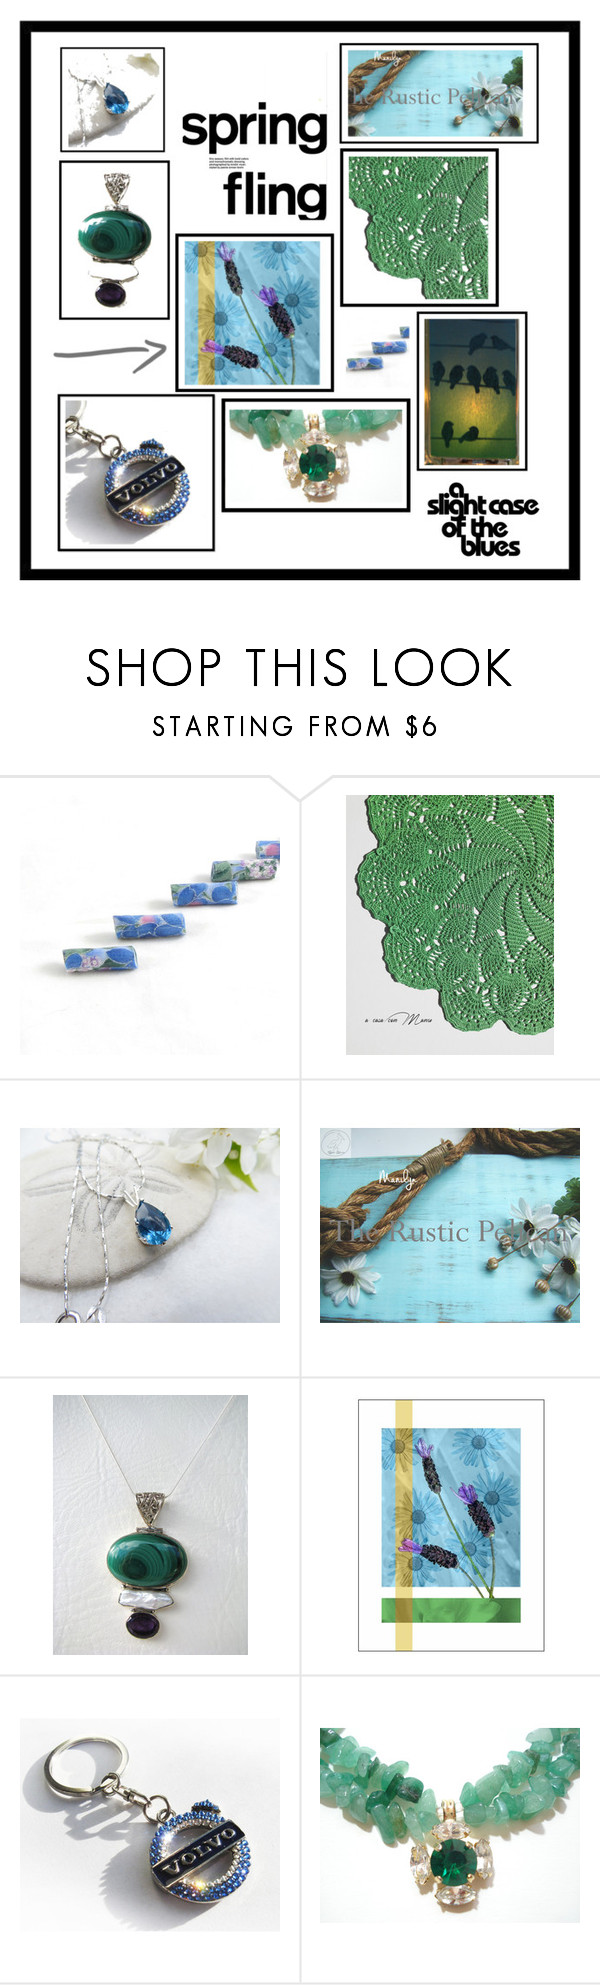 """""""Blue Meets Green"""" by whimzingers ❤ liked on Polyvore featuring etsy, jewelry, art and decor"""